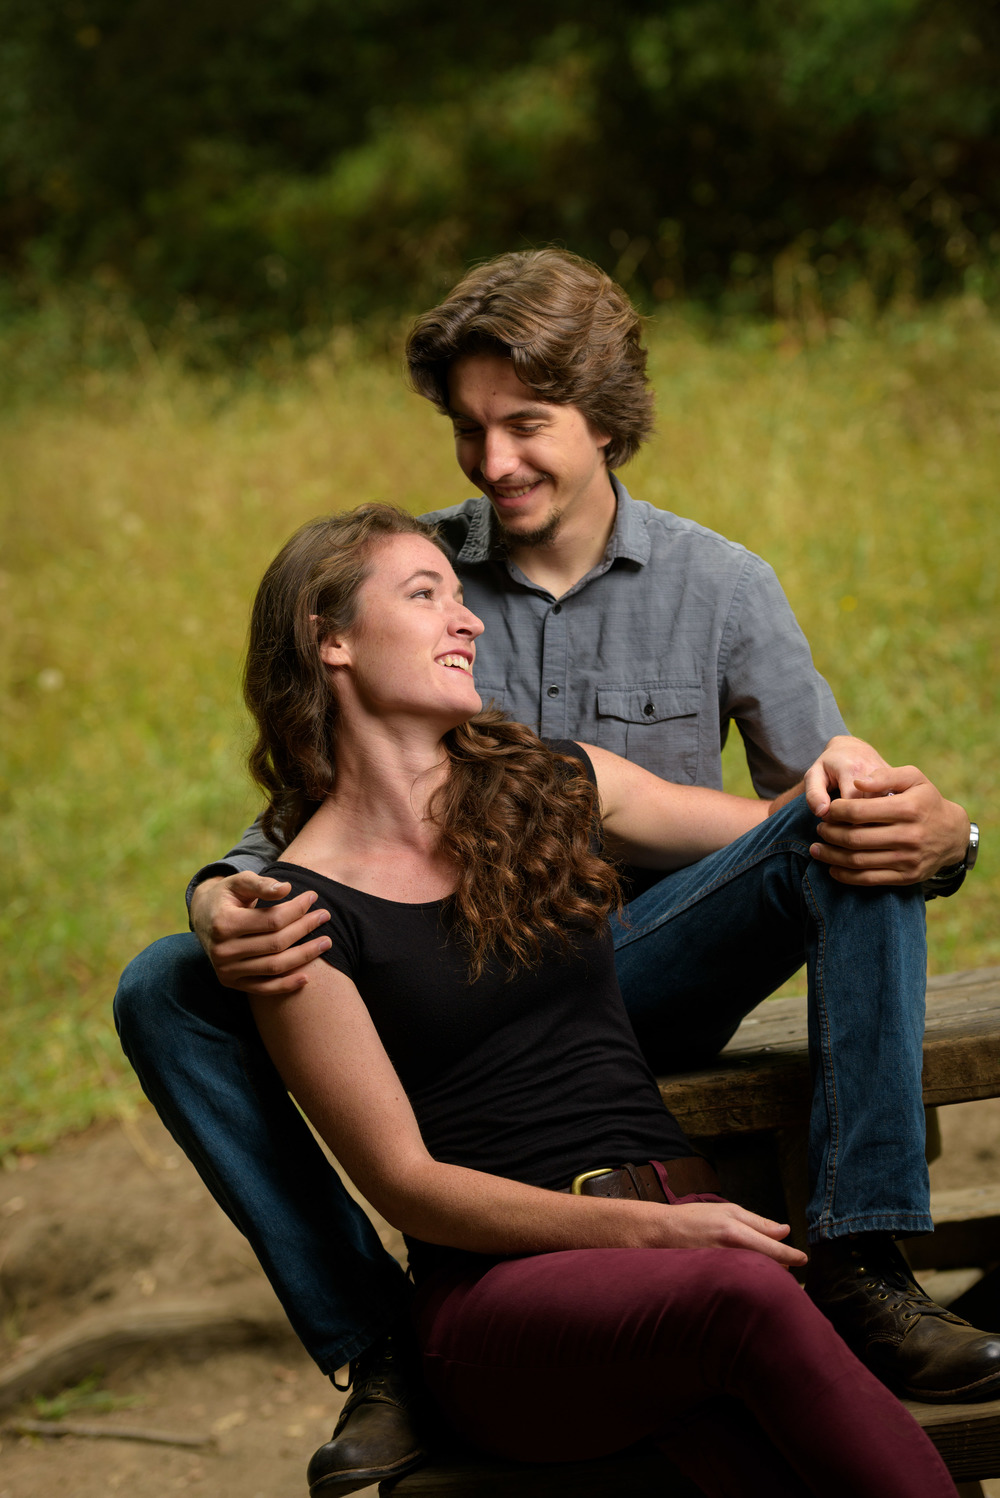 Couple sitting on a bench - Engagement Photos in Nisene Marks Forest in Aptos, CA - by Bay Area wedding photographer Chris Schmauch